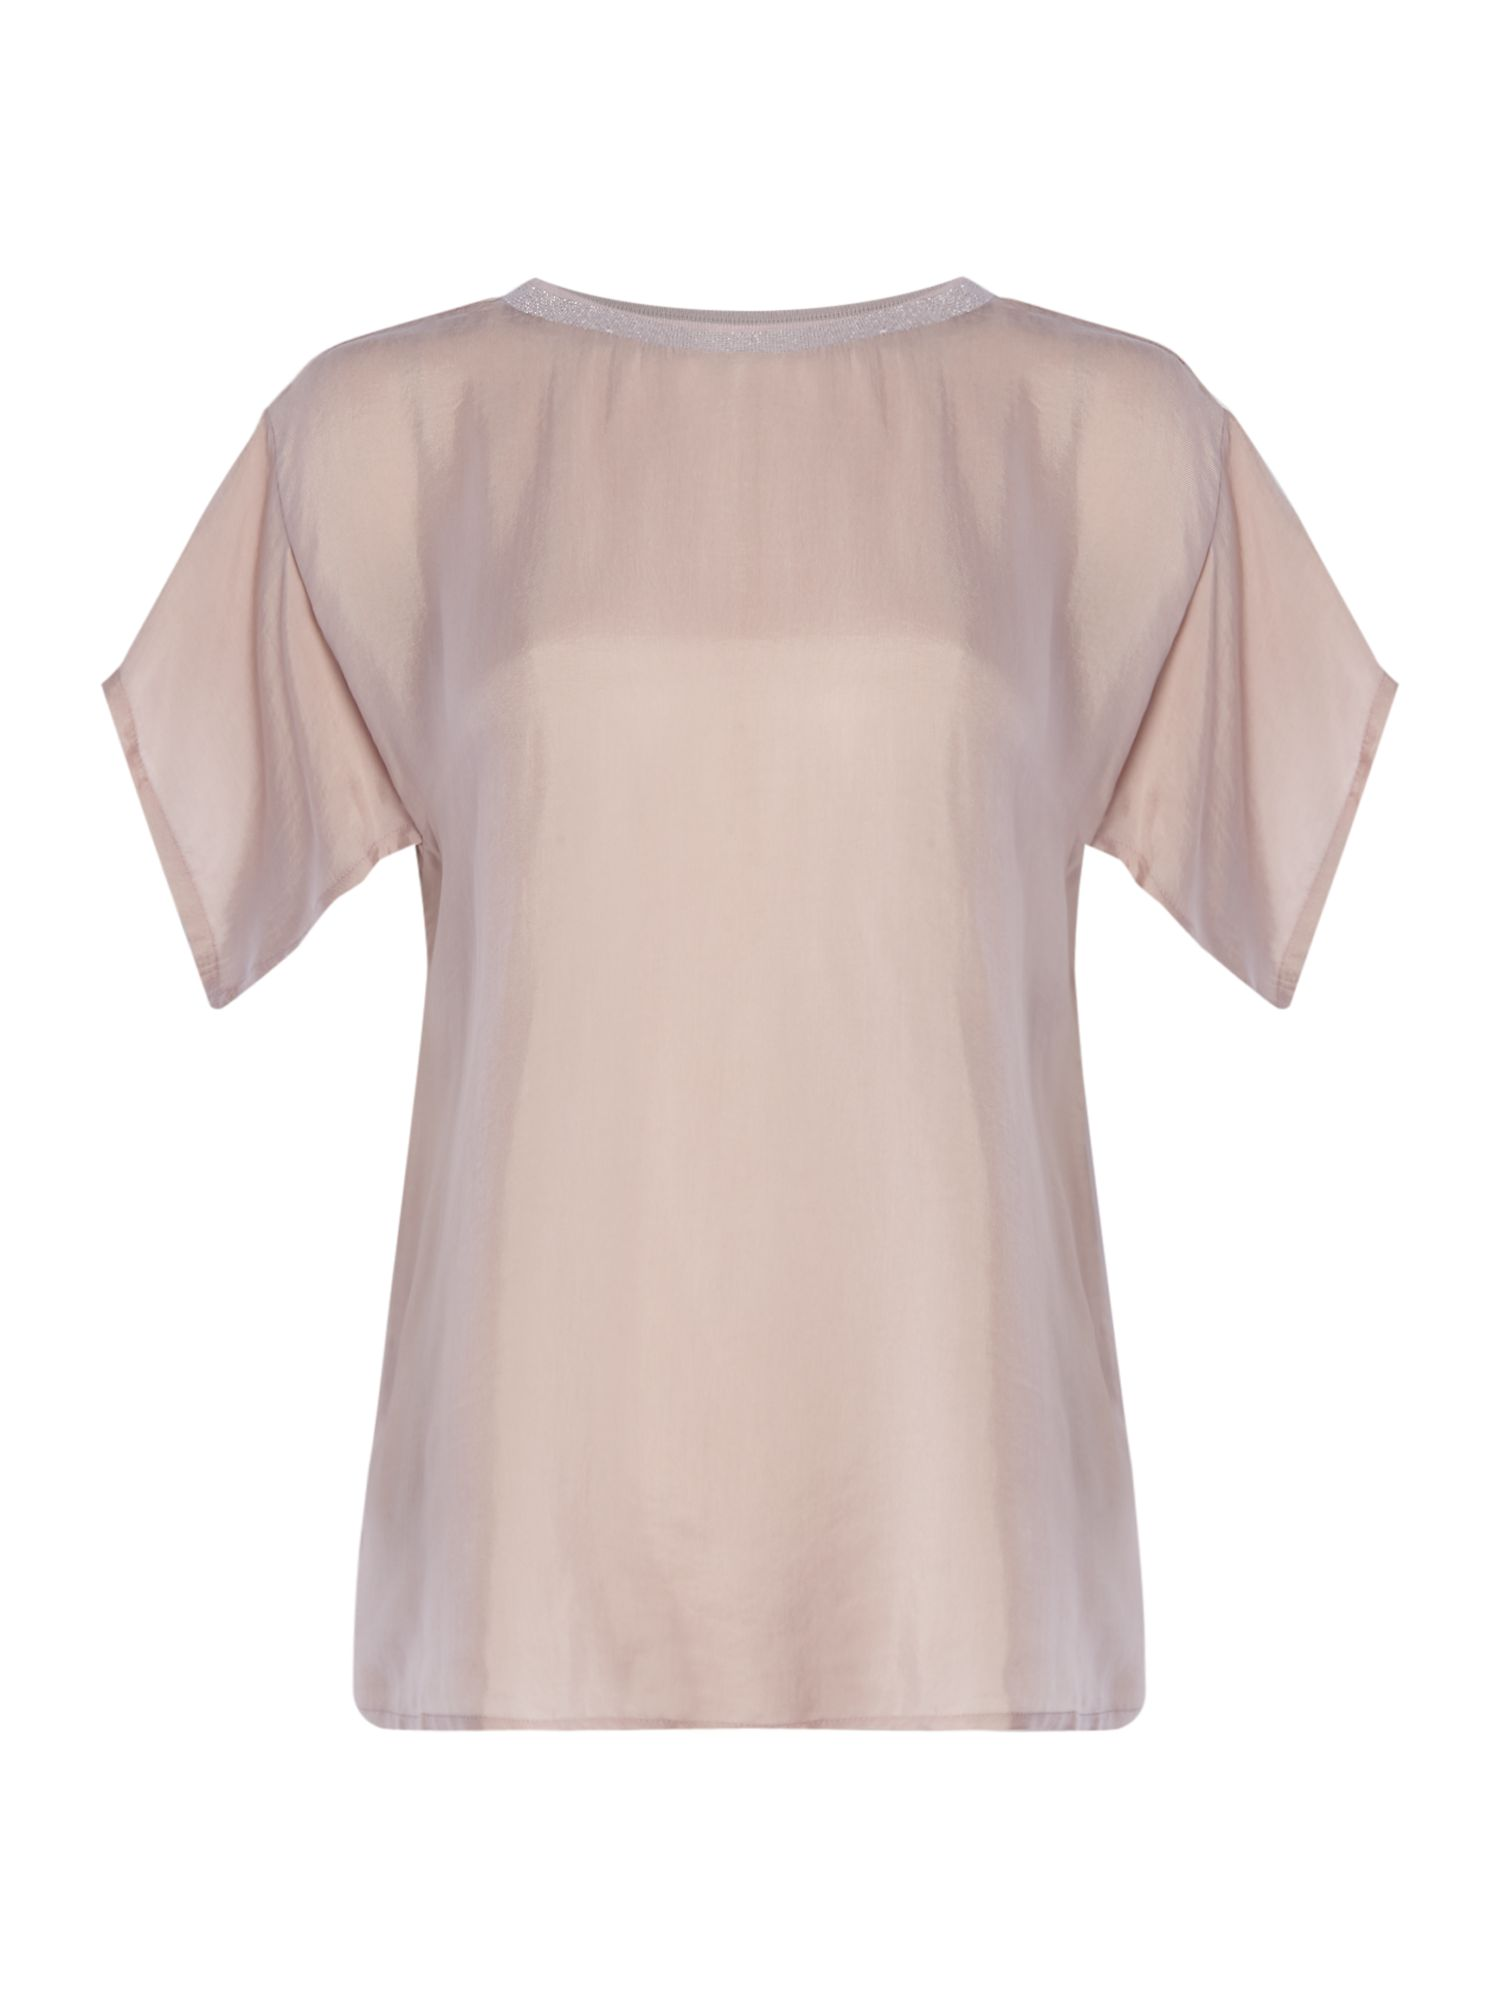 Maison De Nimes Cupro Mix Tee With Rib Trim, Pink